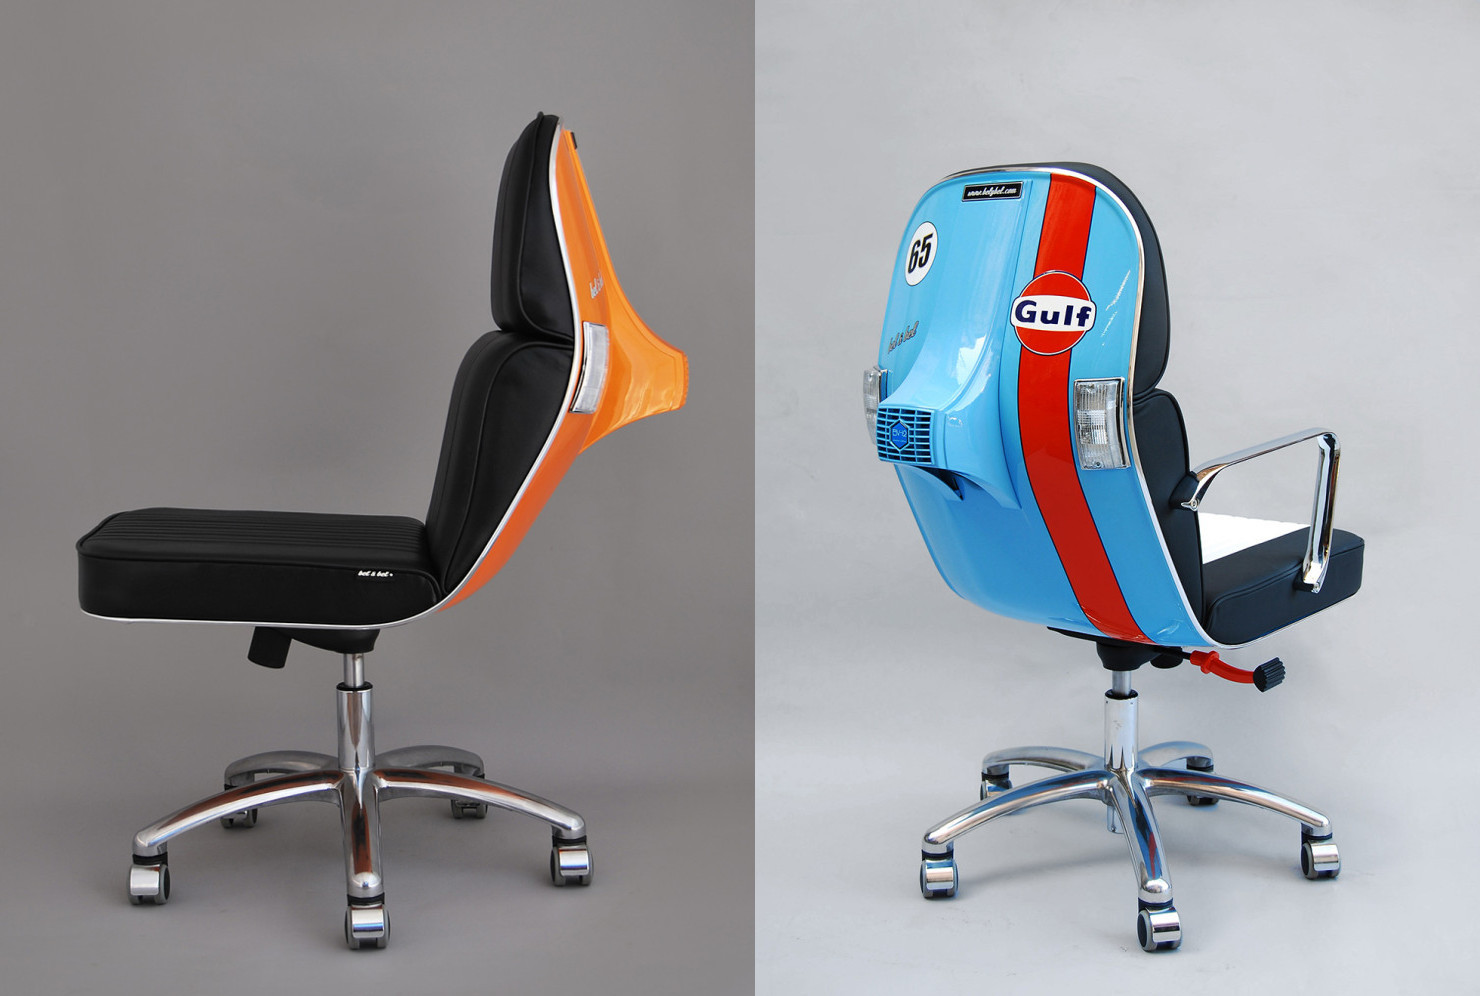 Old Office Chair office chairs made out of old vespa scooters / boing boing